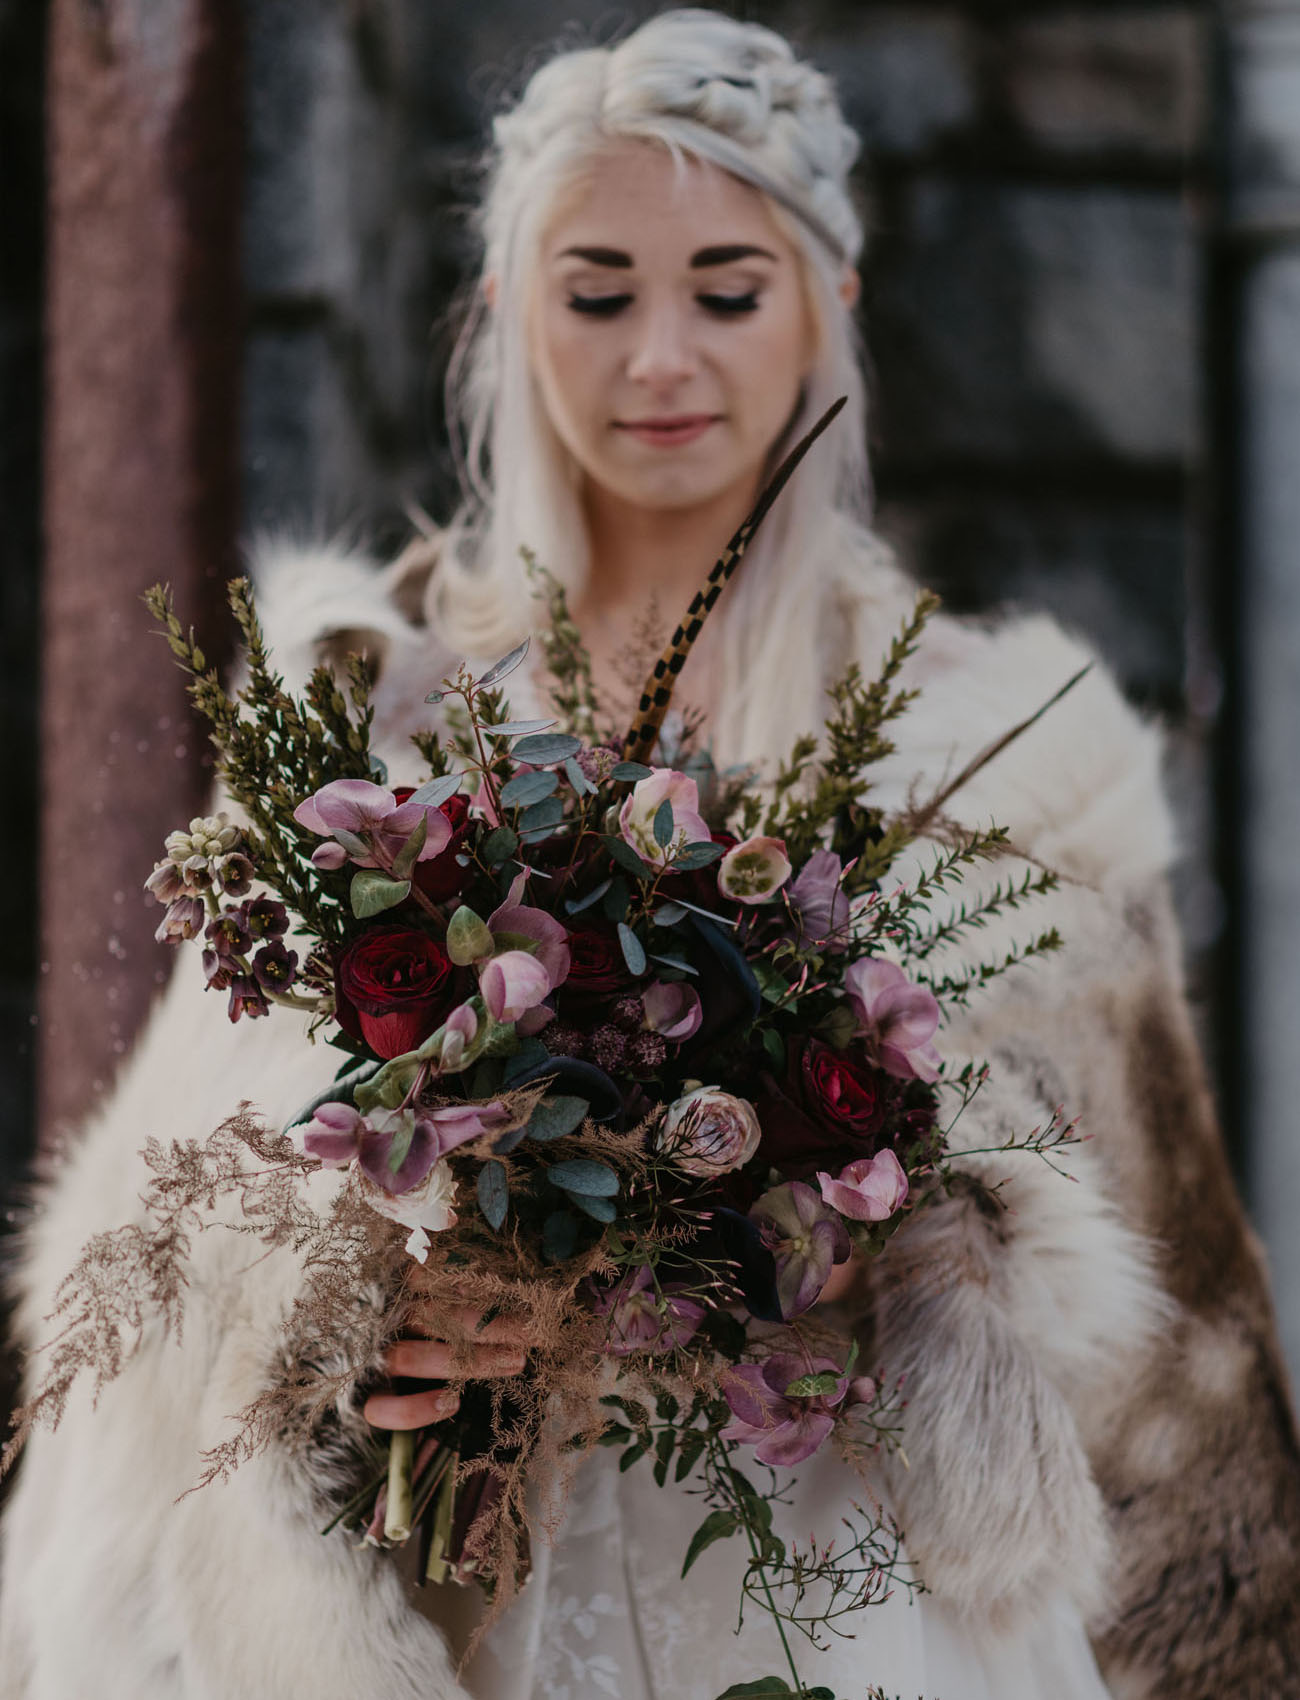 The bridal bouquet was done in moody shades and with much texture